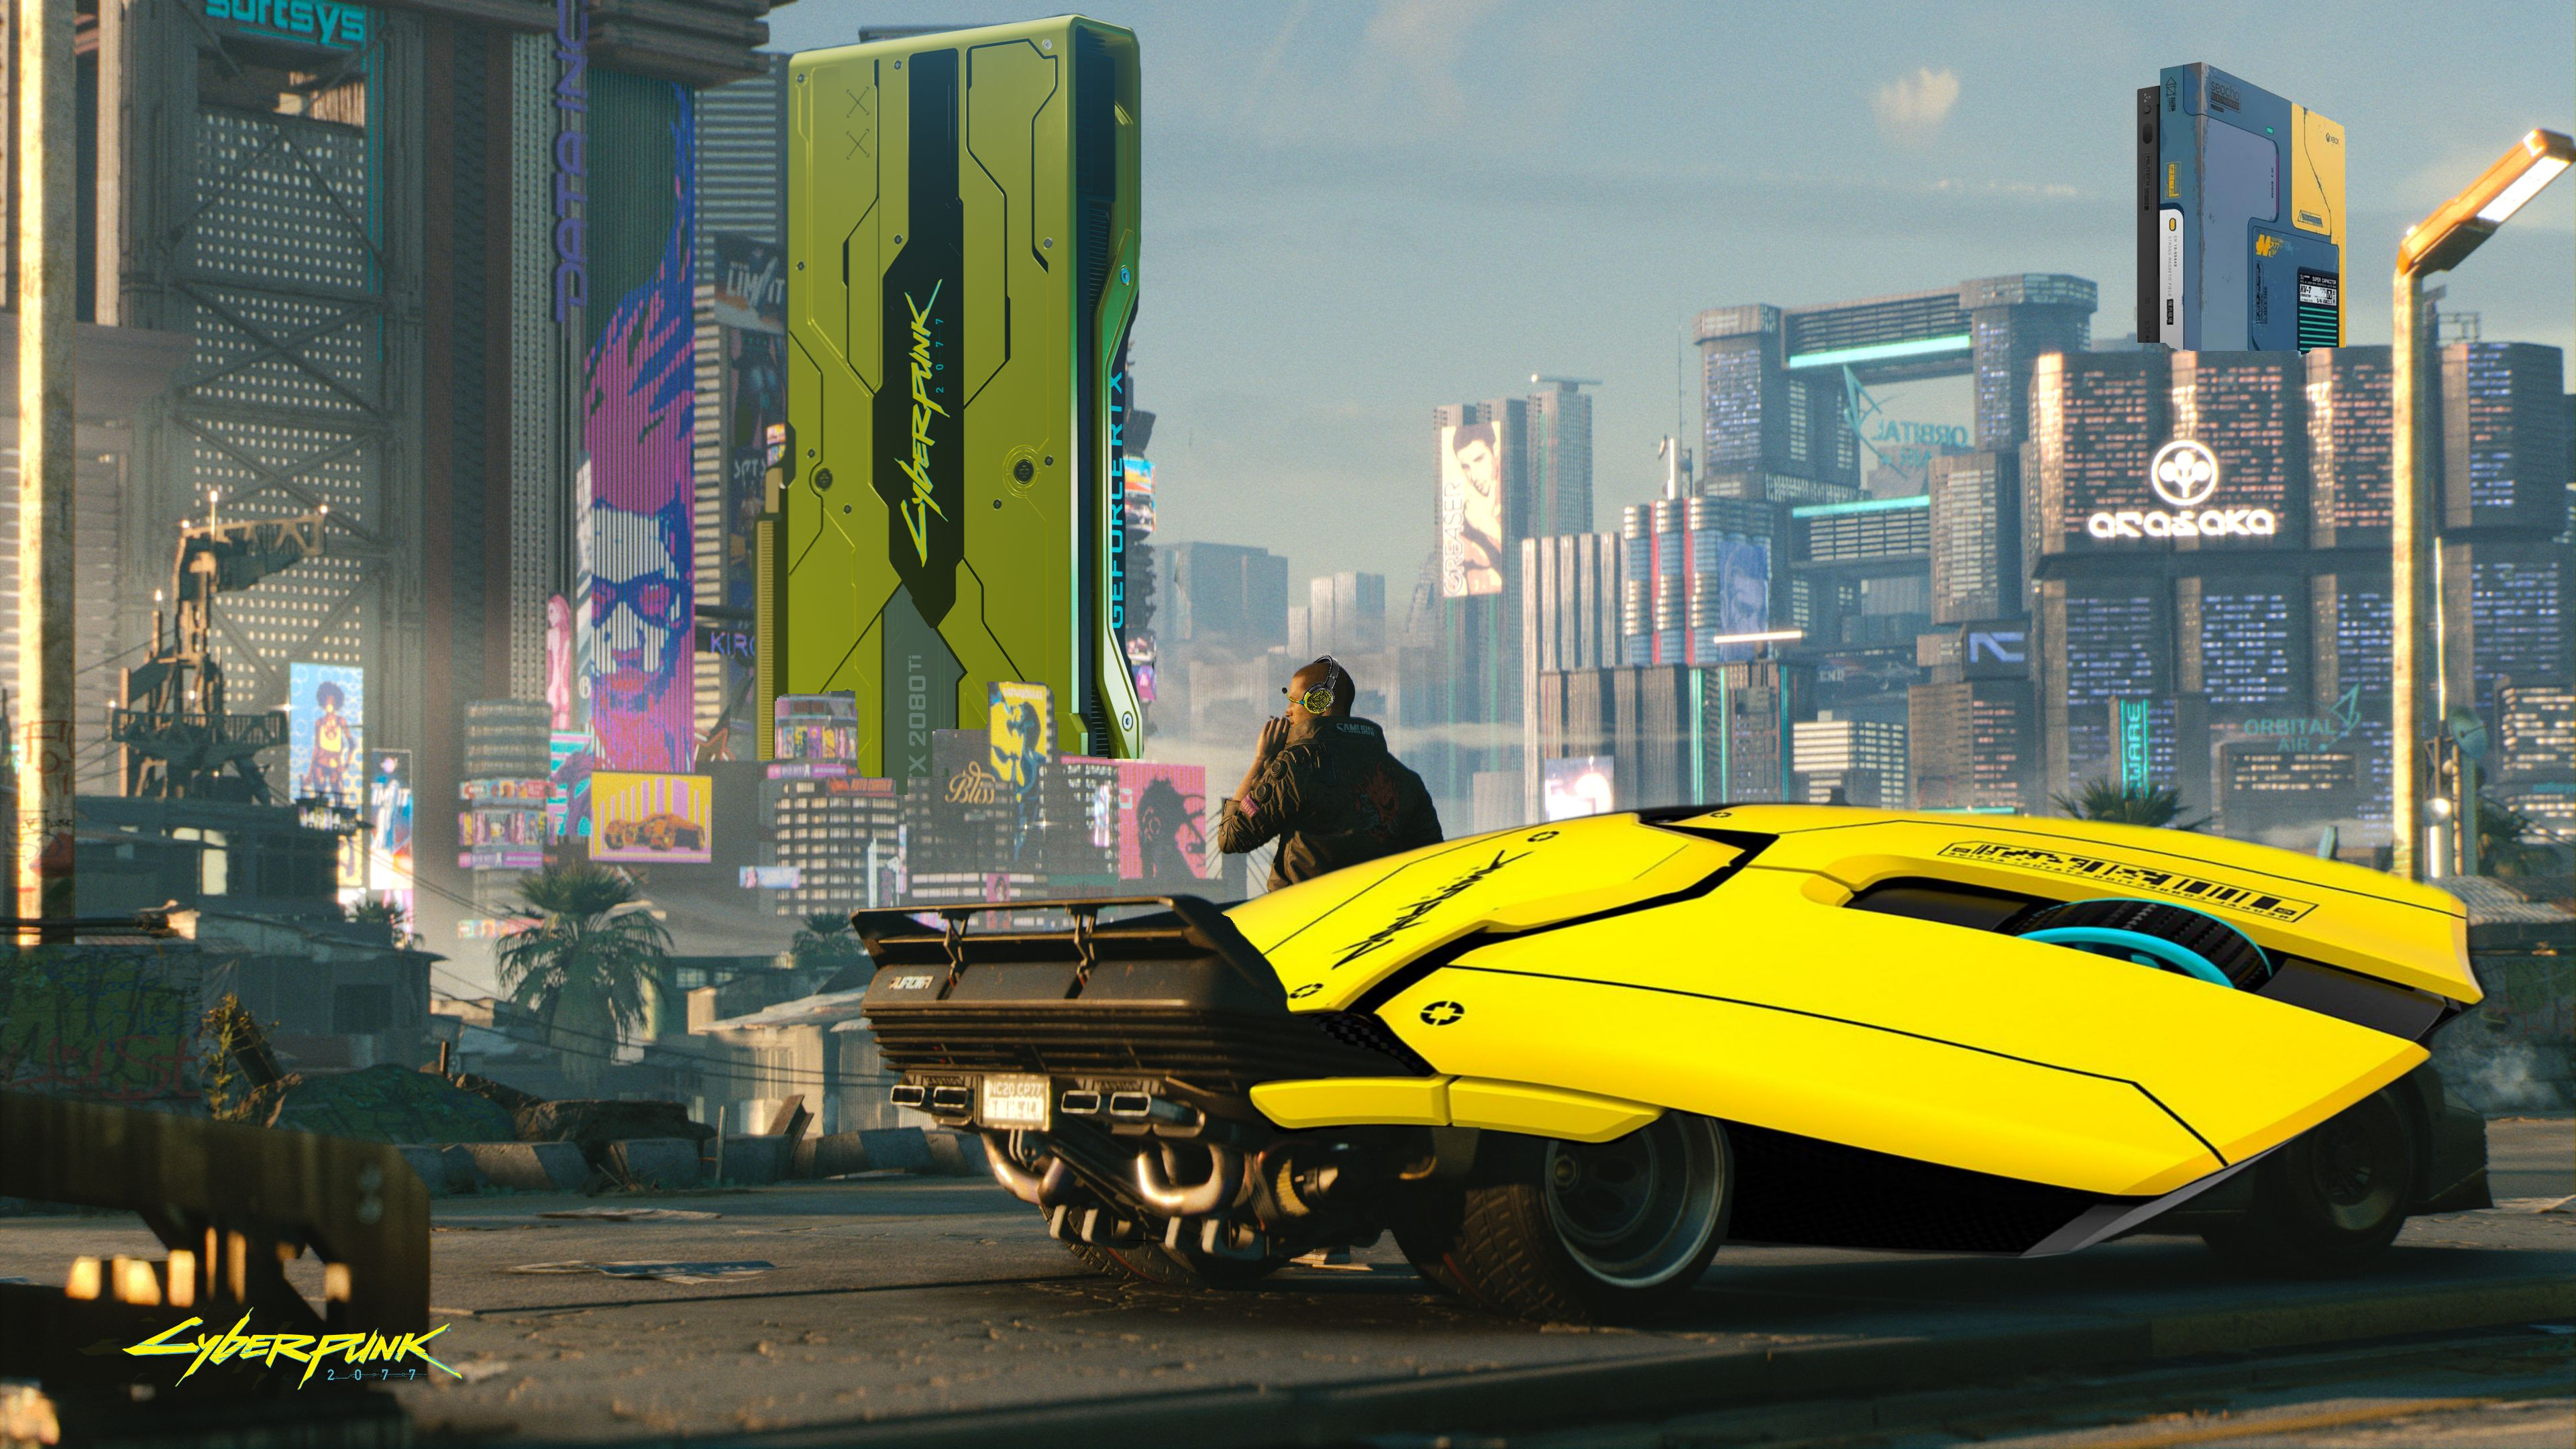 A screenshot of V from Cyberpunk 2077 leaning on a cool car and looking at the Night City skyline, except the car has been replaced with a Cyberpunk 2077 Razer Viper mouse